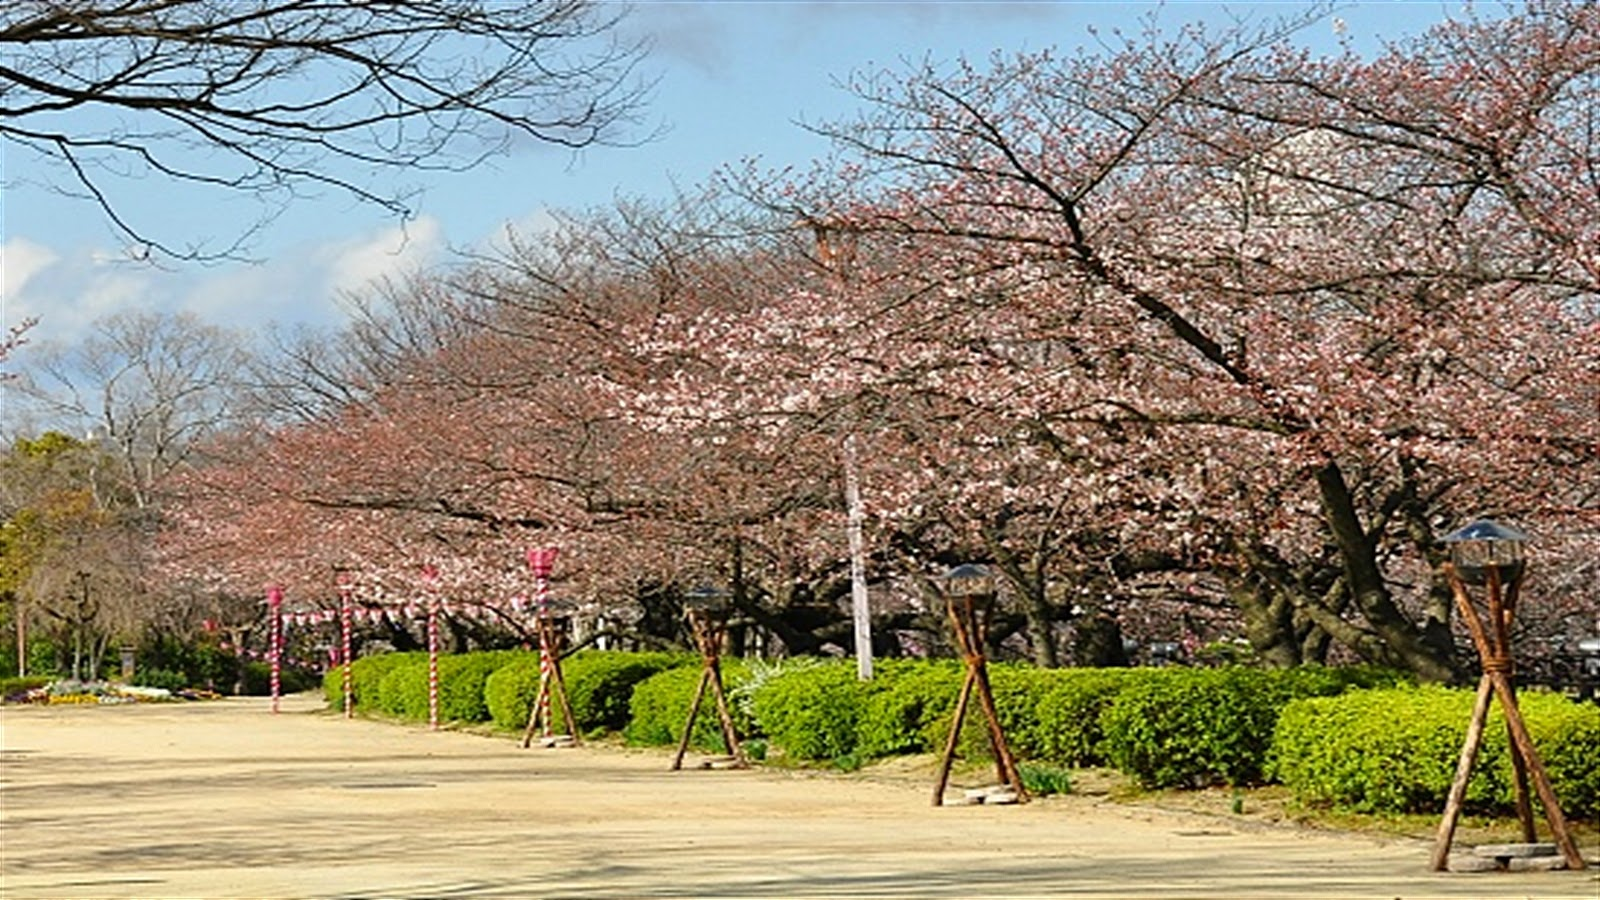 Nishinomaru Garden is Osaka's most popular location for cherry blossom viewing and Hanami Parties. Nishinomaru Garden features around 600 cherry trees, ...